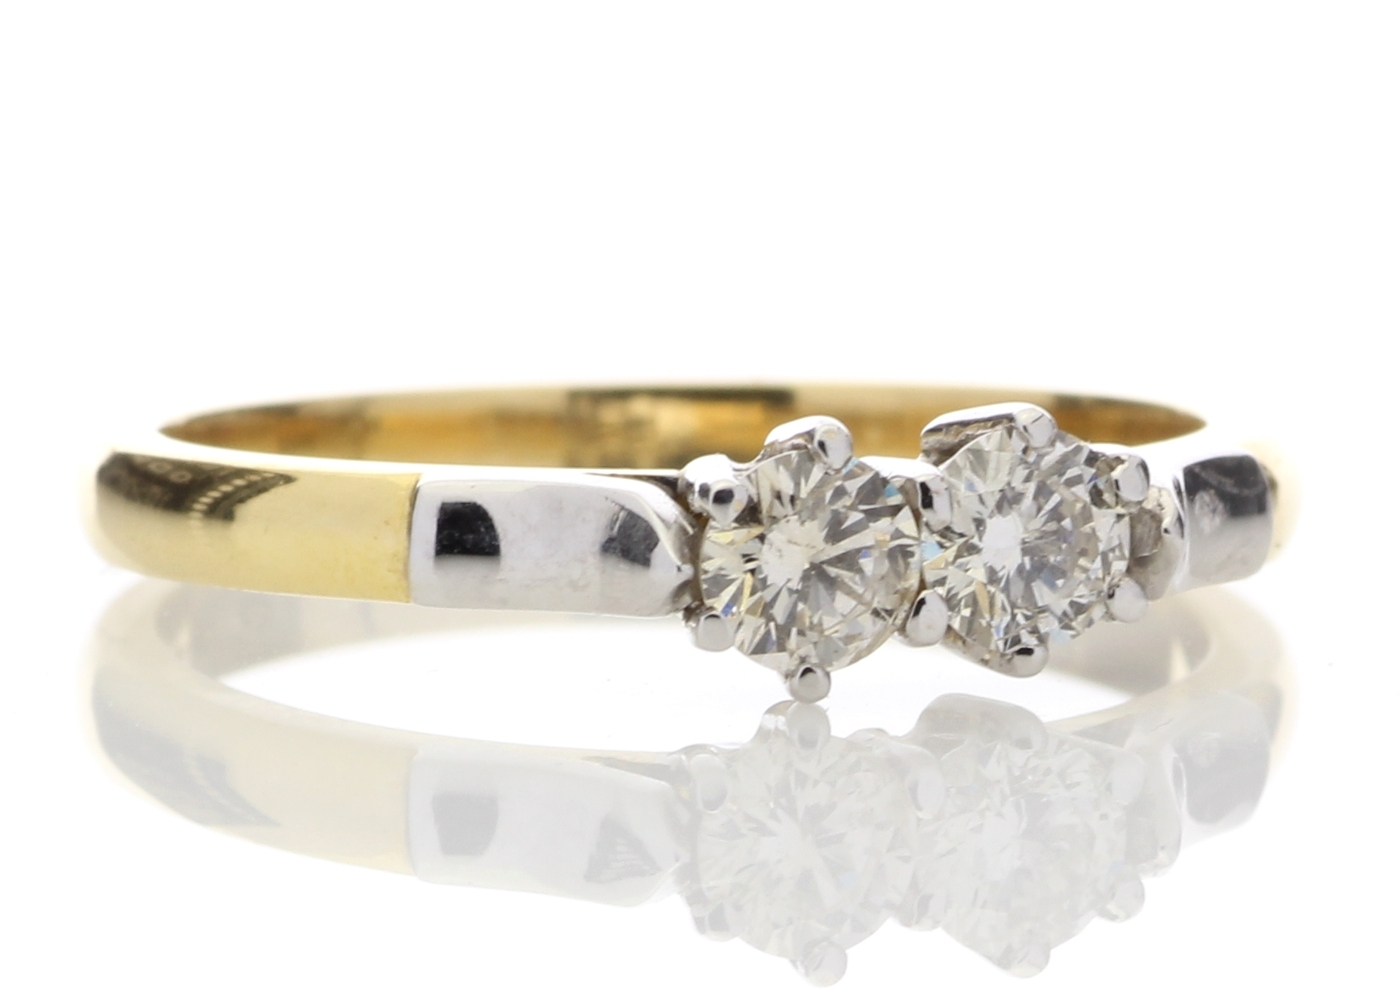 Lot 3 - 18ct Two Stone Claw Set Diamond Ring 0.33 Carats